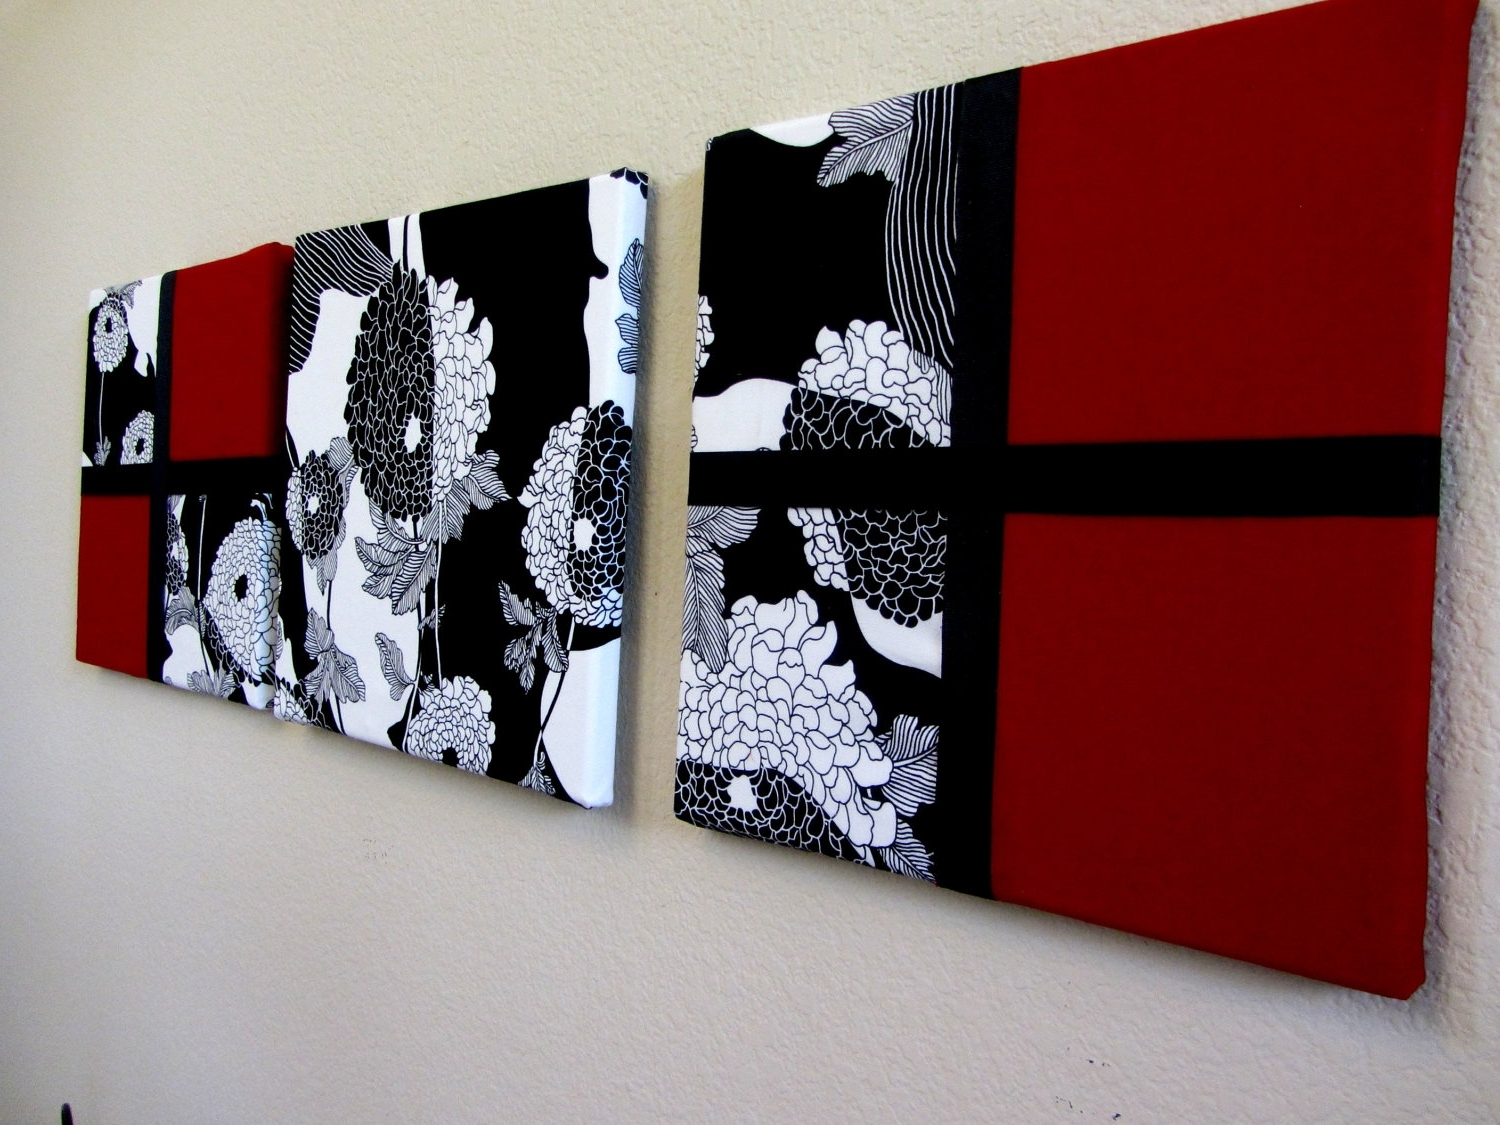 Admirable Wall Art Oversized Abstract Wall Art Black For Scenario In Trendy Red Fabric Wall Art (Gallery 5 of 15)